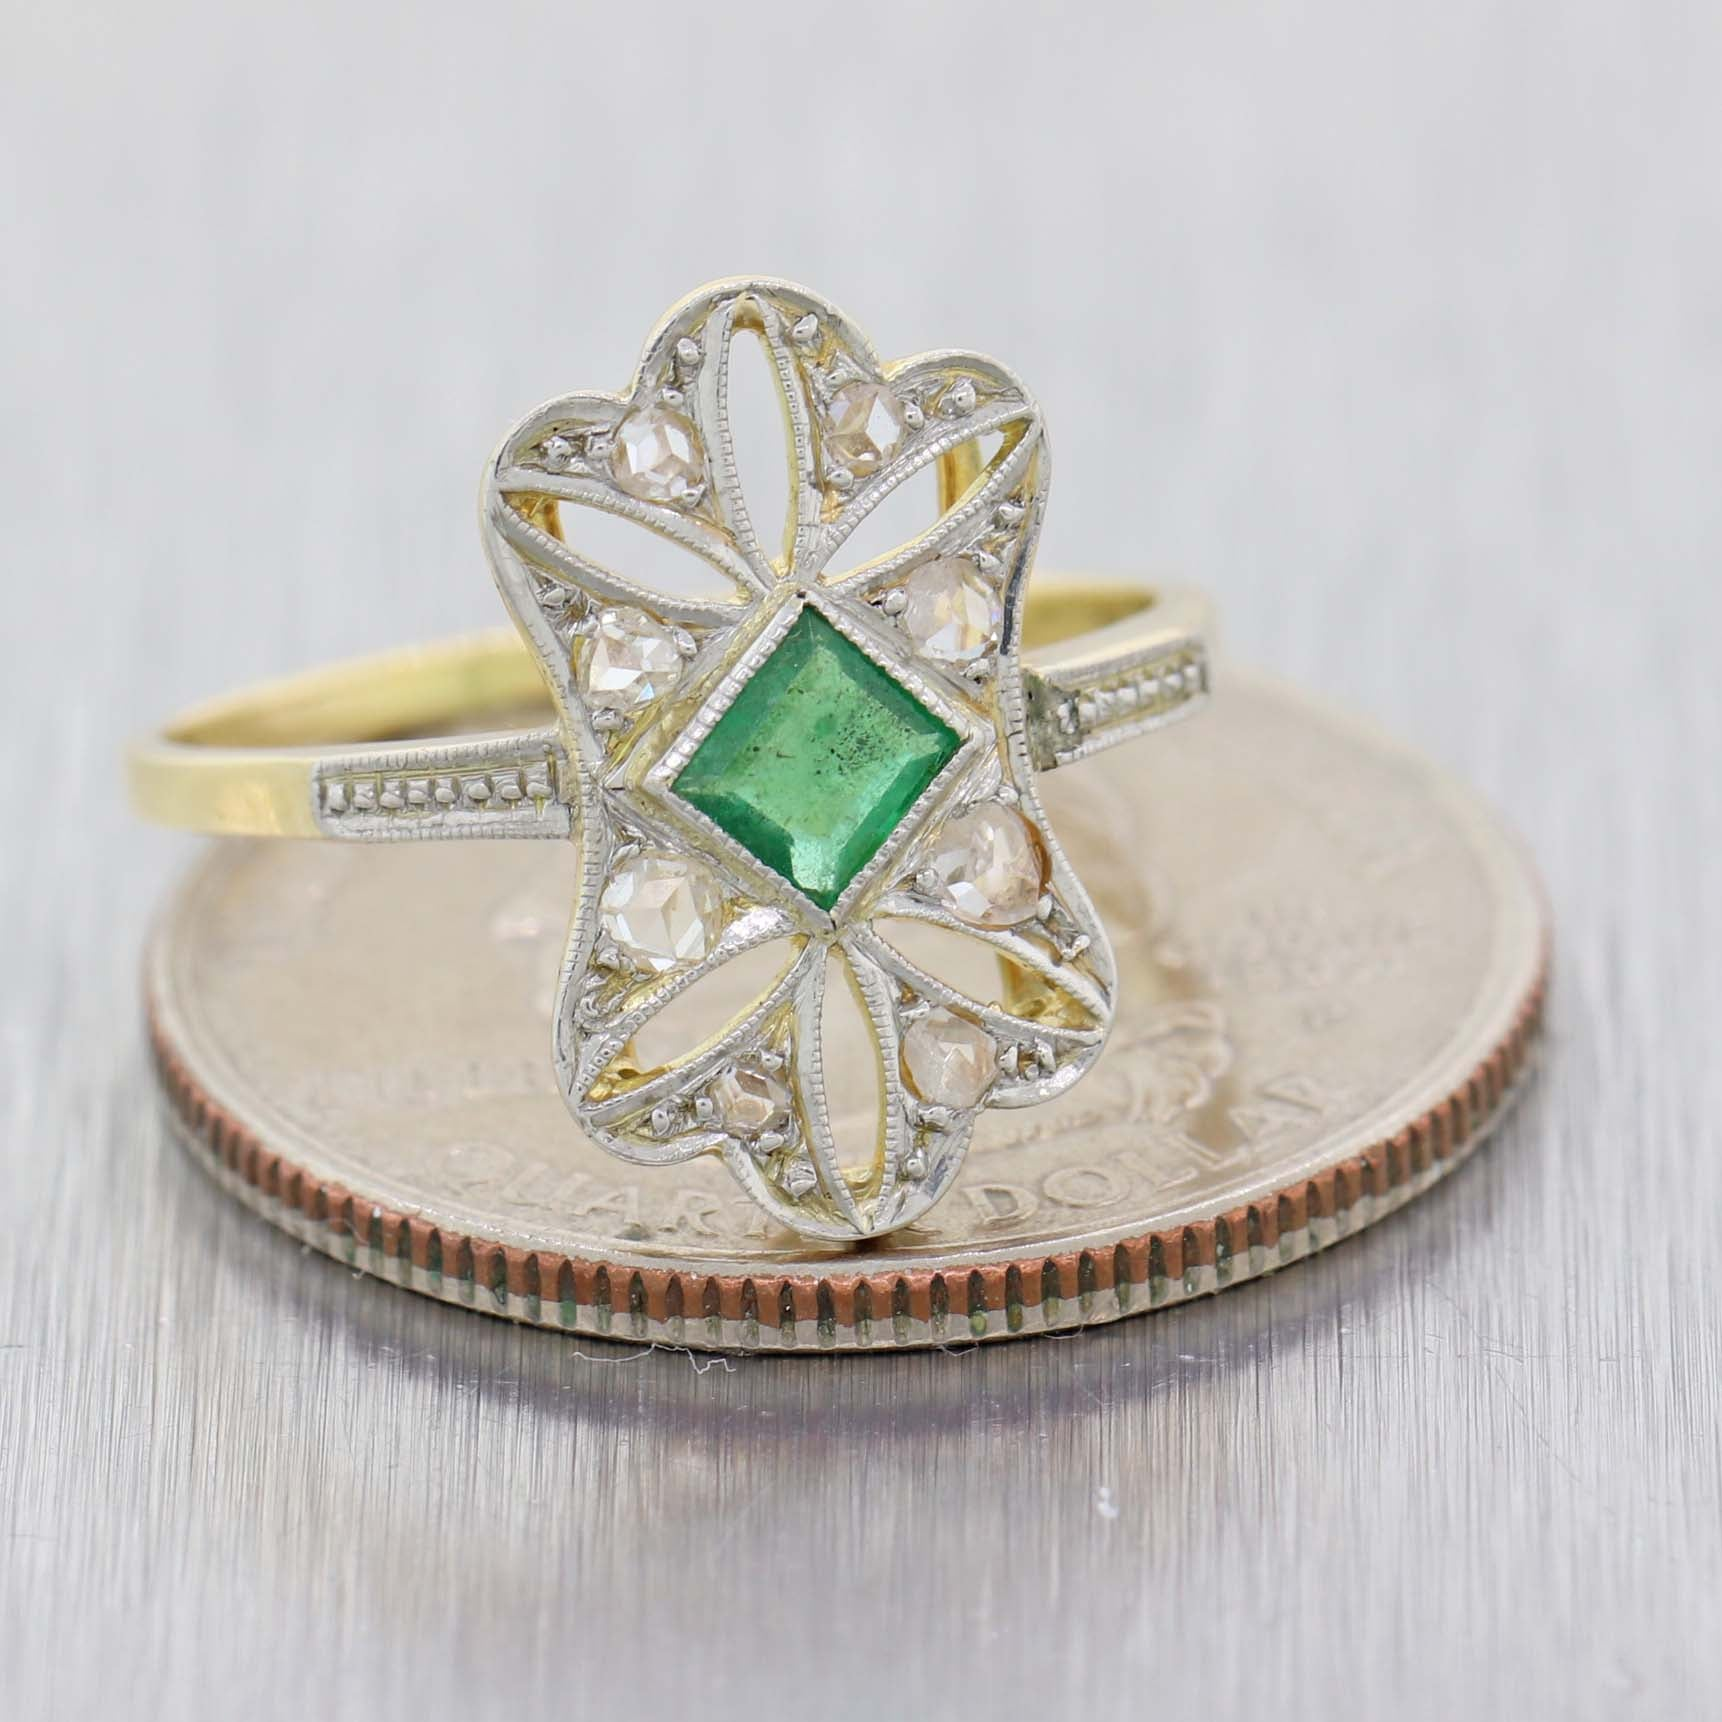 1930s Antique Art Deco Platinum on Yellow Gold Emerald Diamond Cocktail Ring